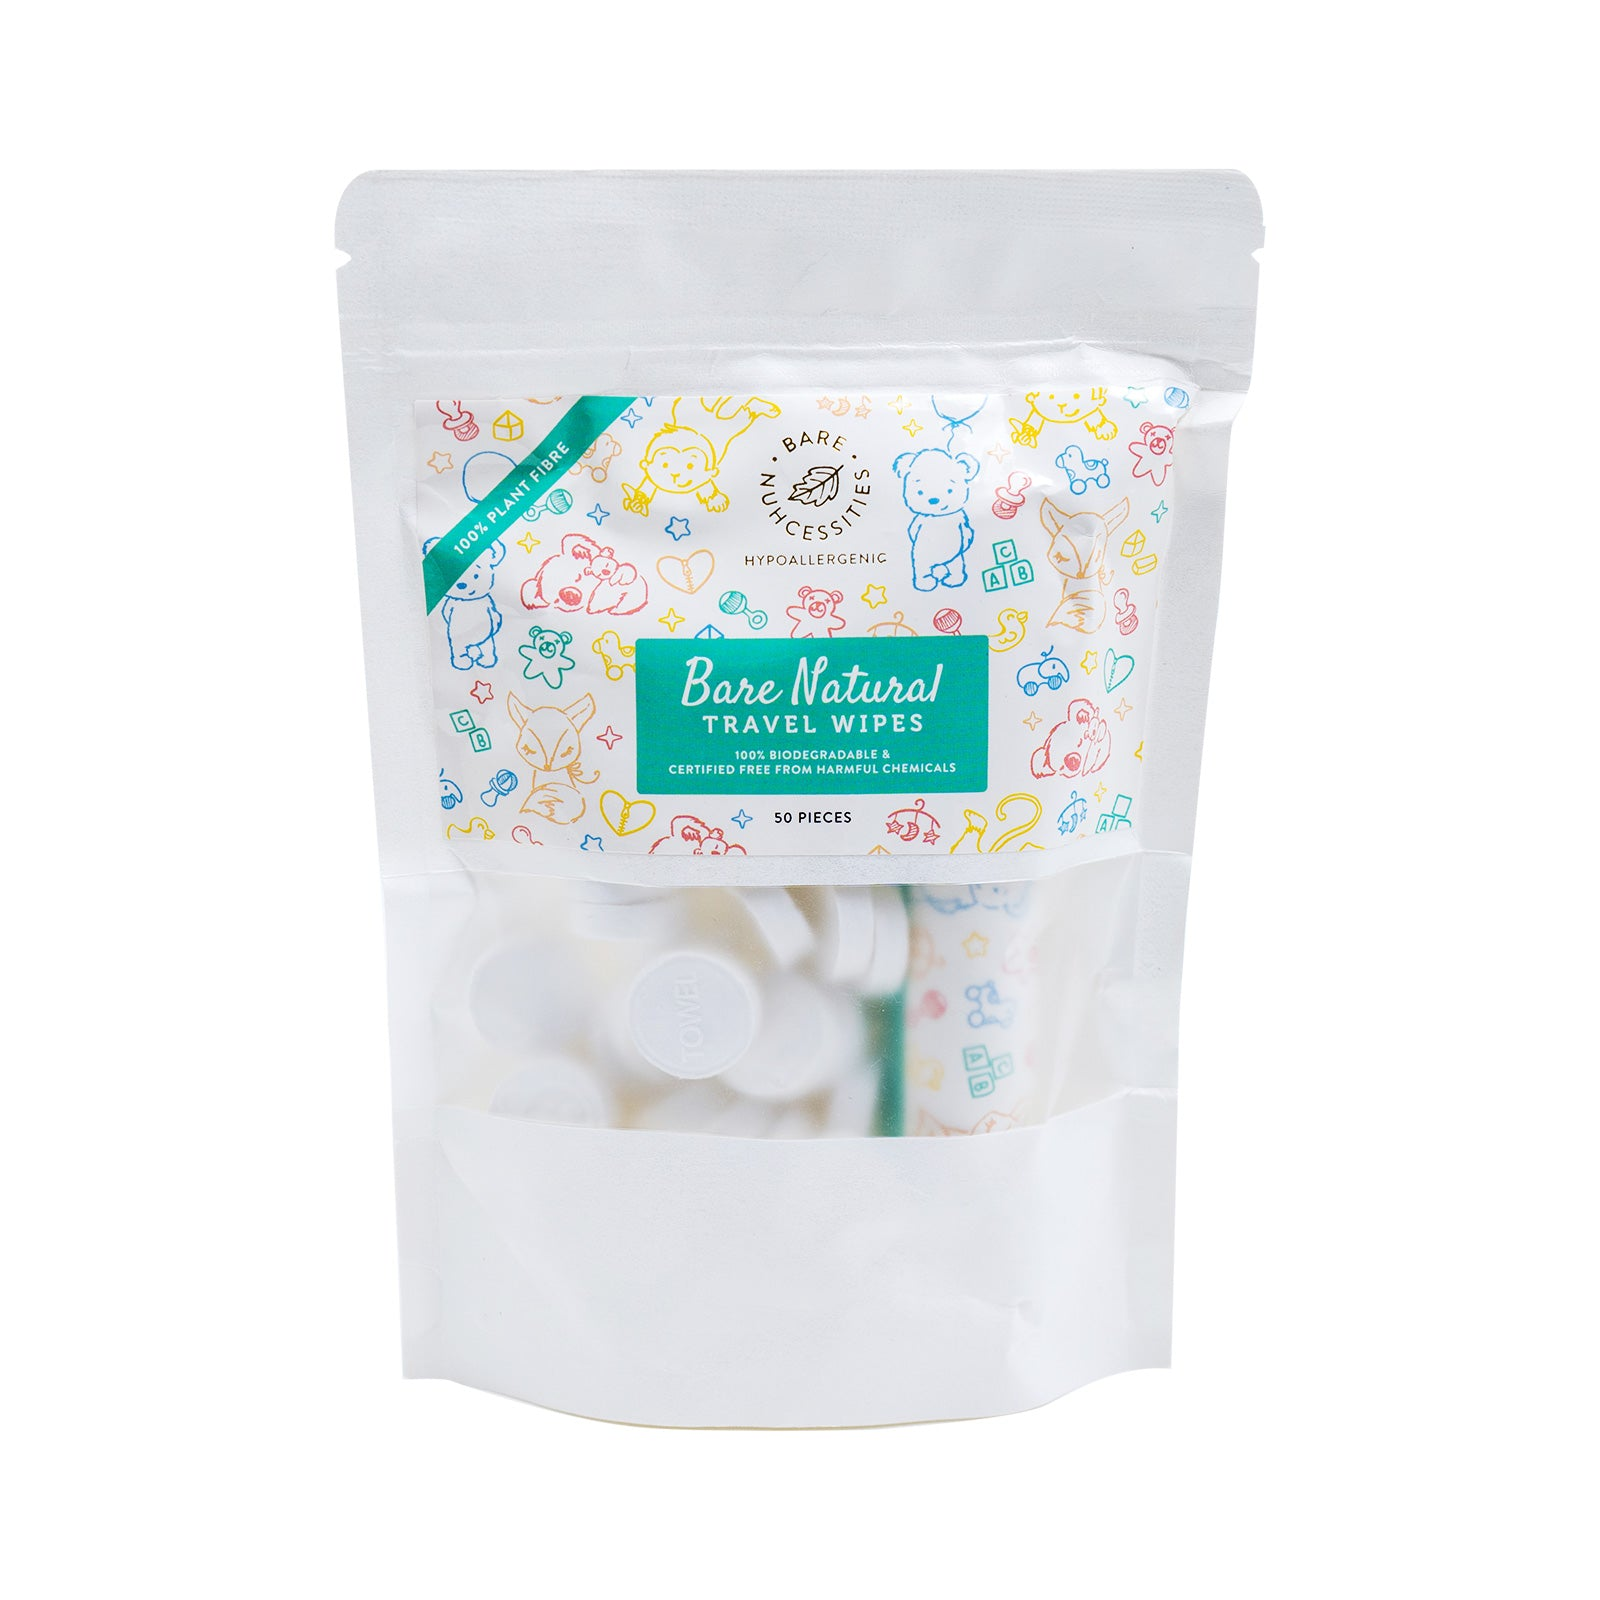 Bare Natural Travel Wipes